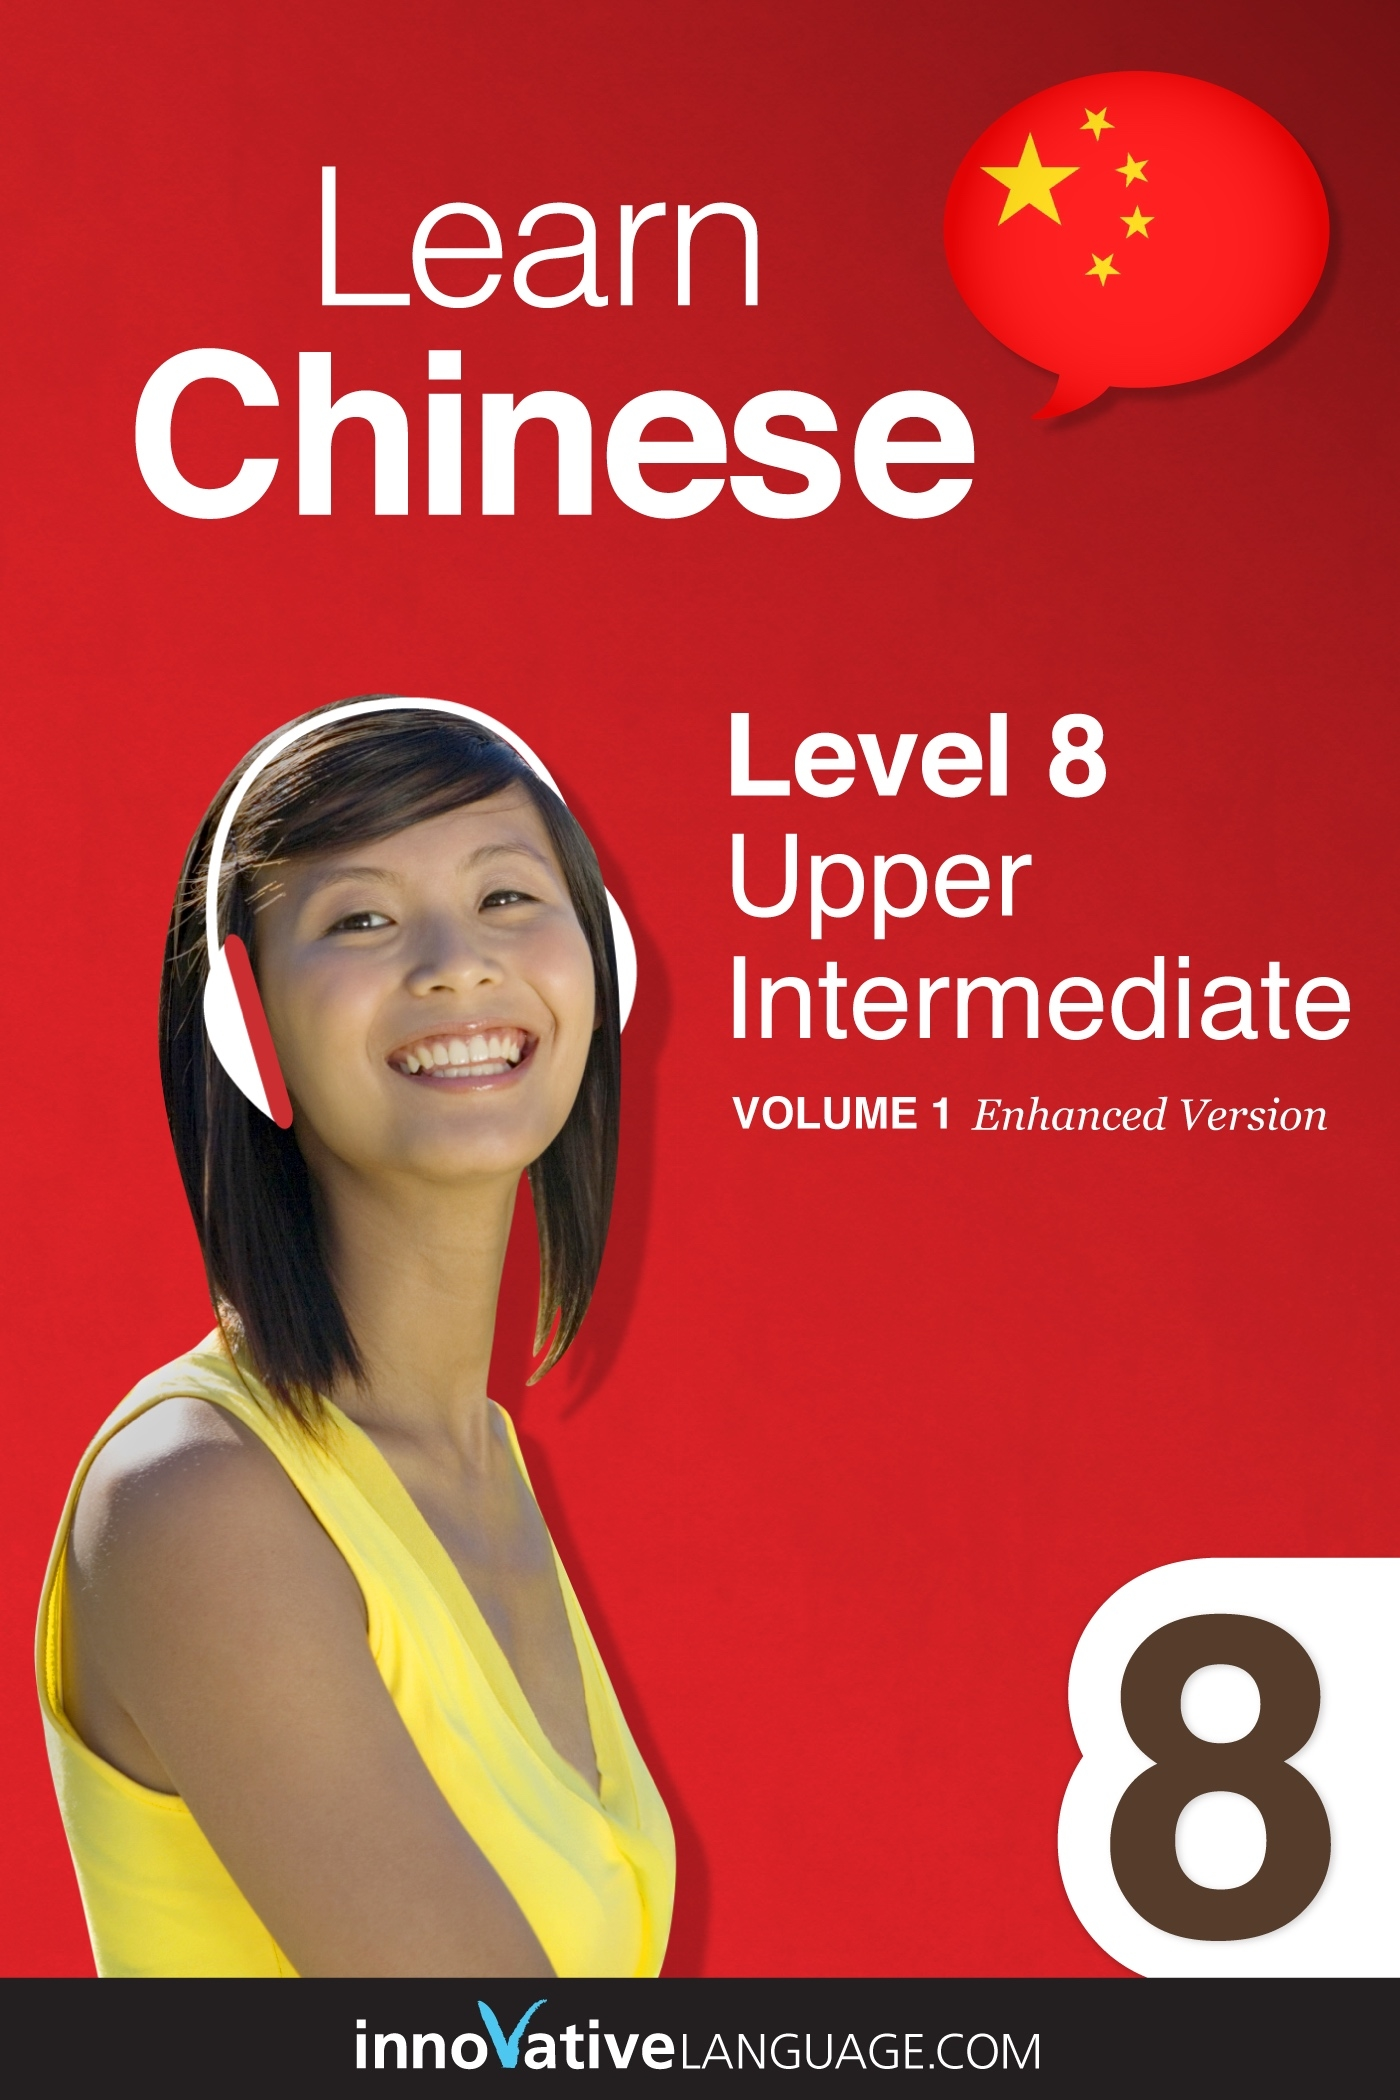 [eBook] Learn Chinese - Level 8: Upper Intermediate